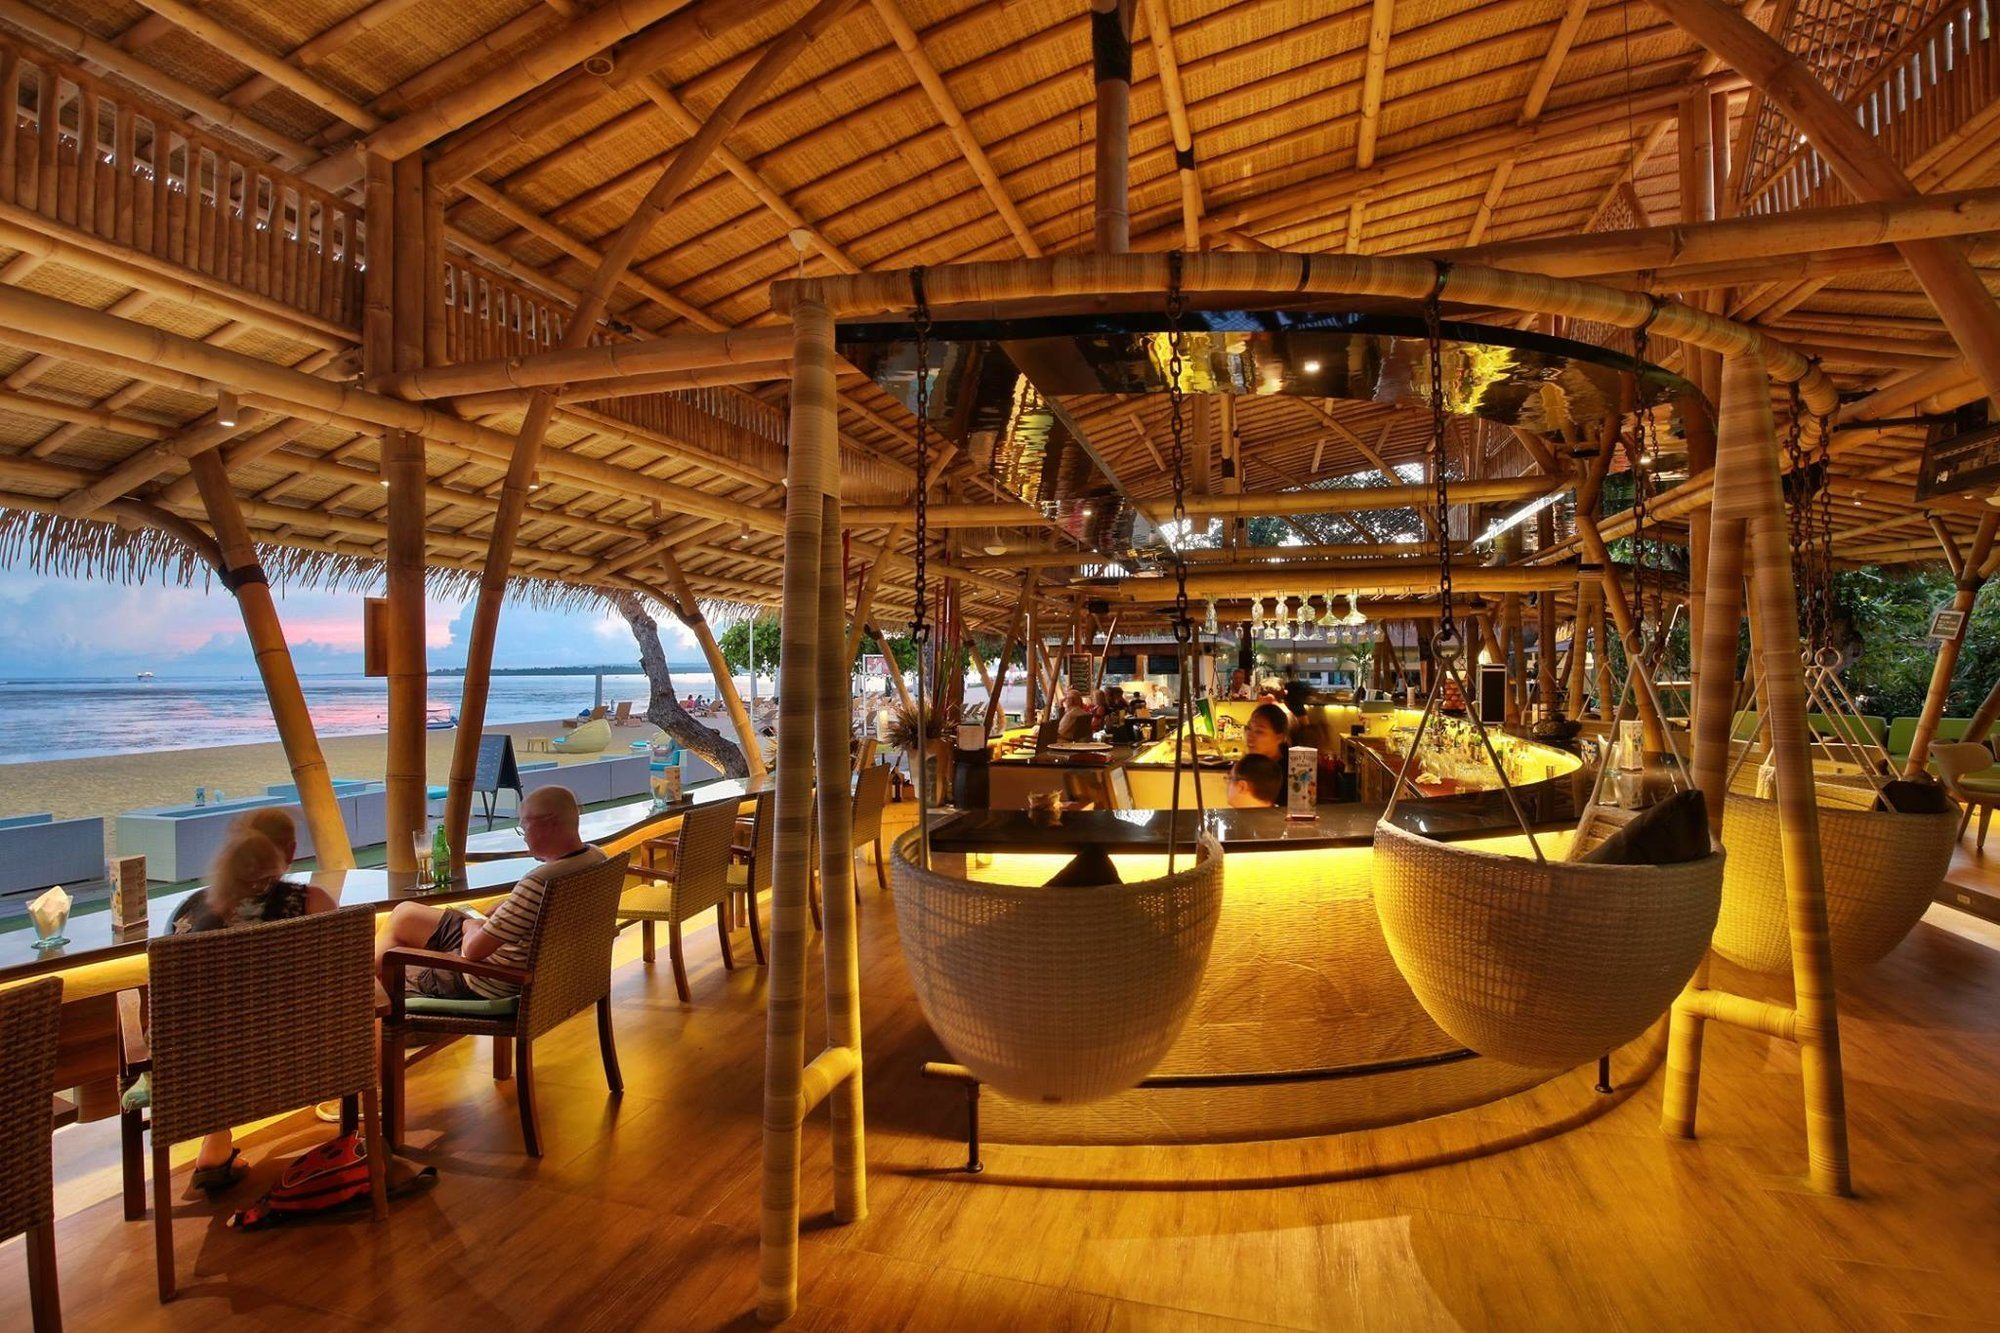 Quirky Dining Experiences In Bali